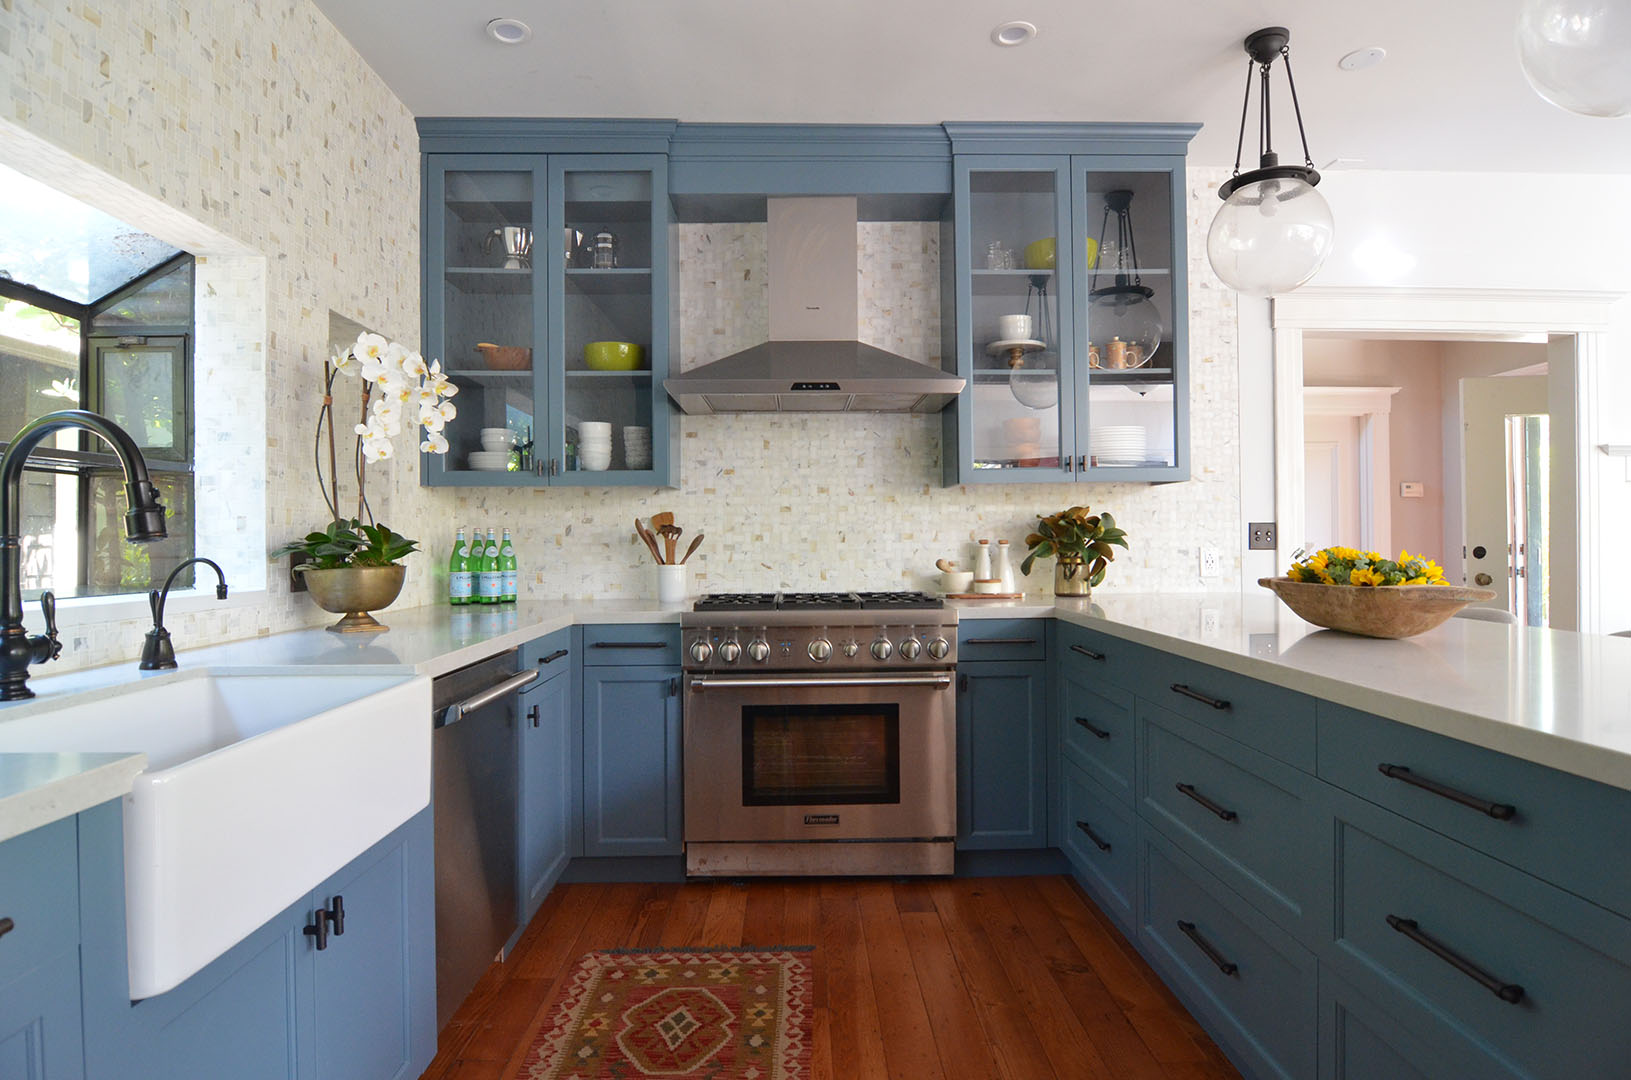 Kitchen interior design in North Berkeley